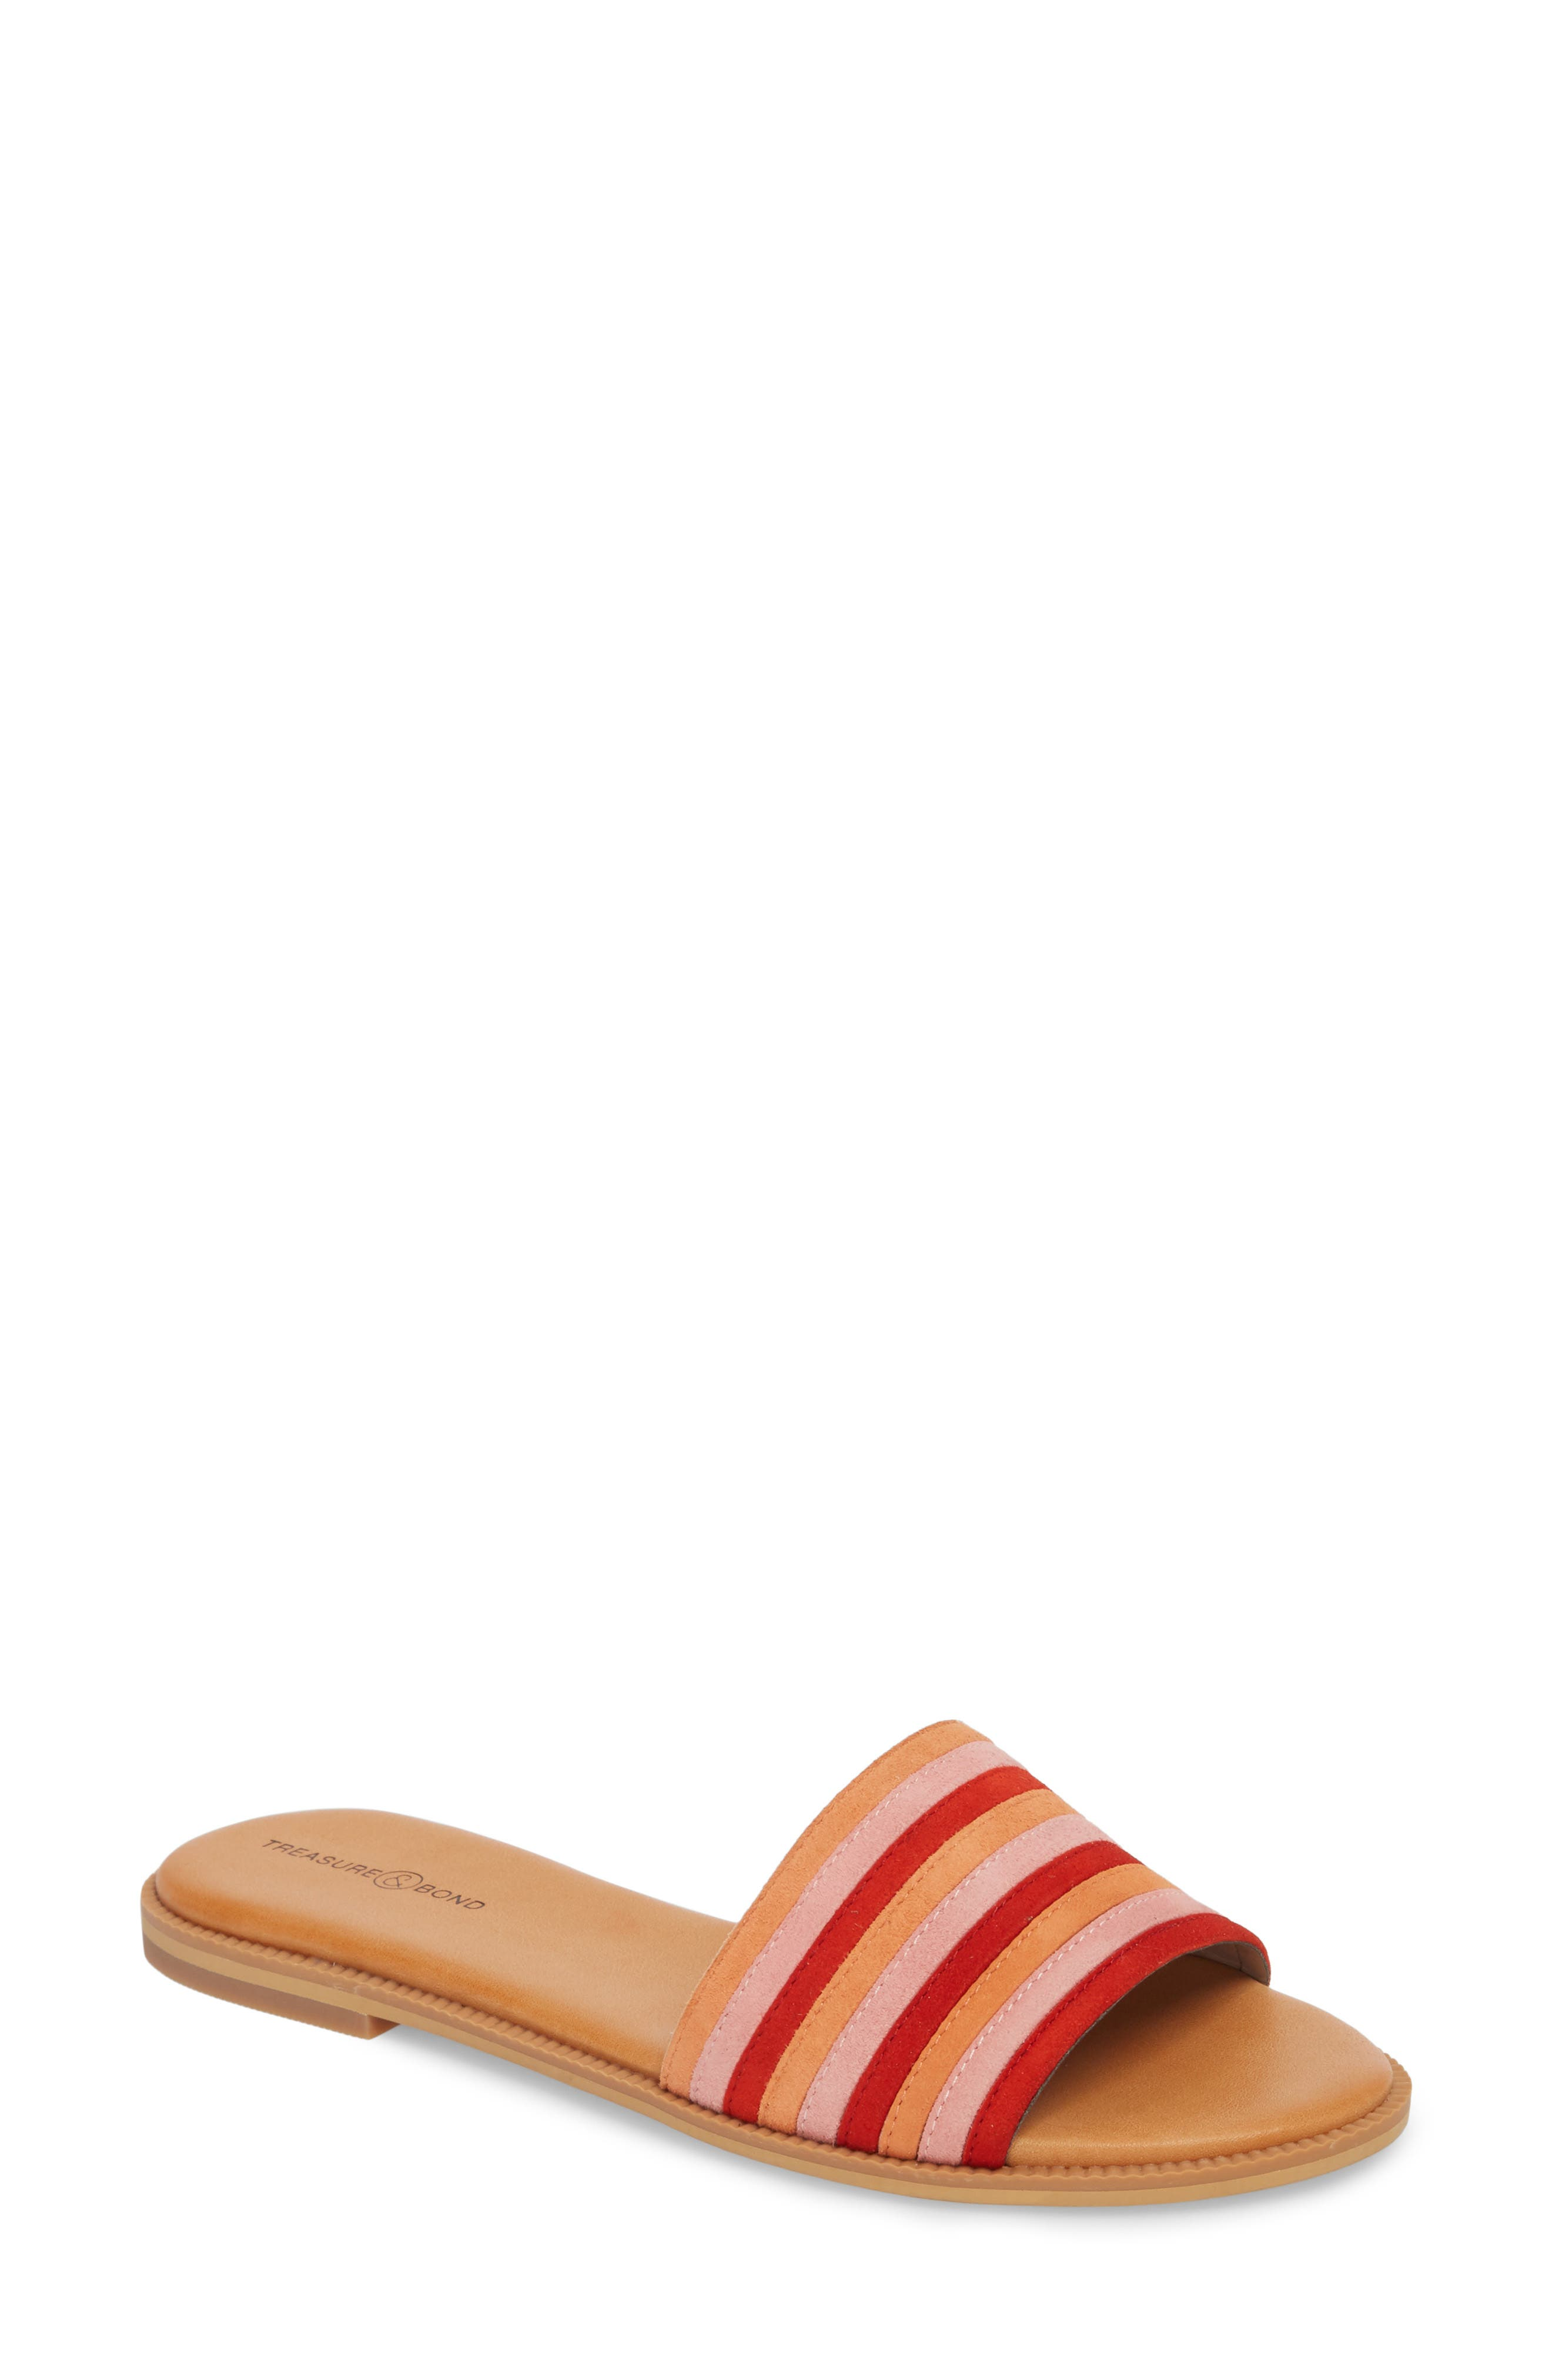 Treasure & Bond Mere Flat Slide Sandal (Women)